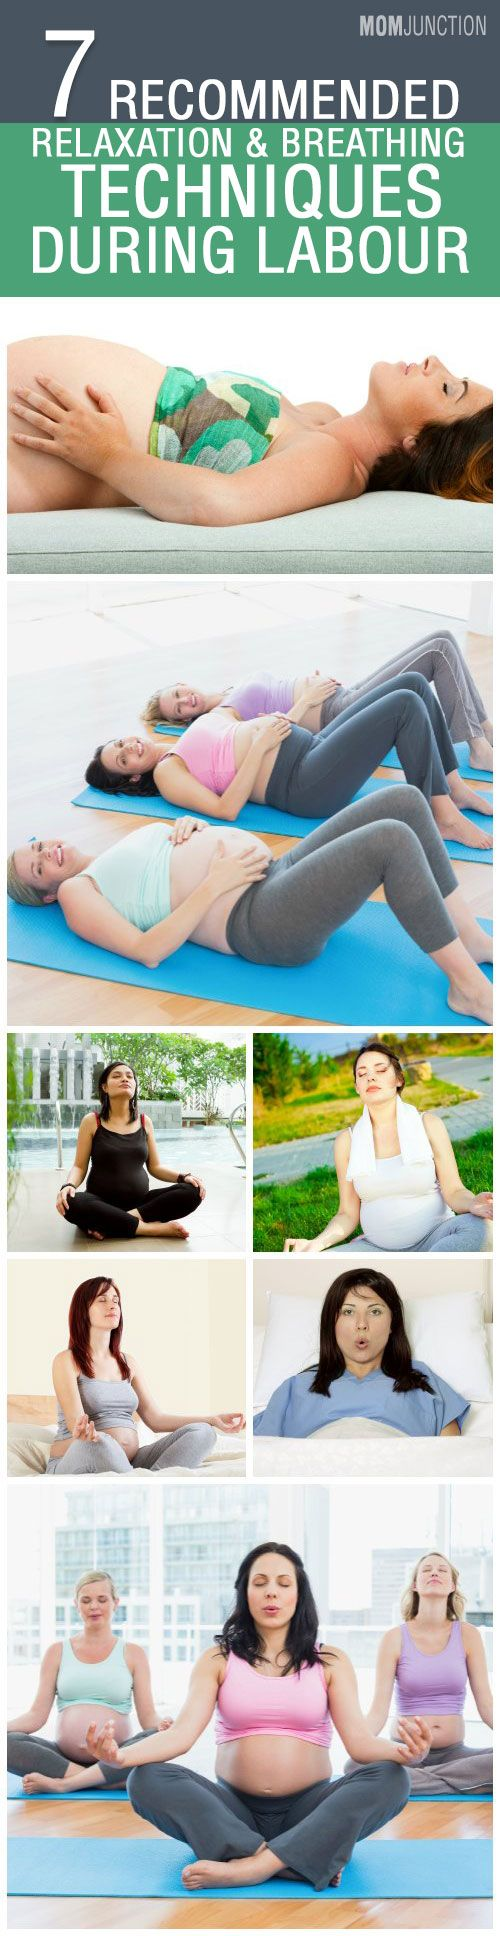 7 Recommended  Relaxation & Breathing Techniques During Labour